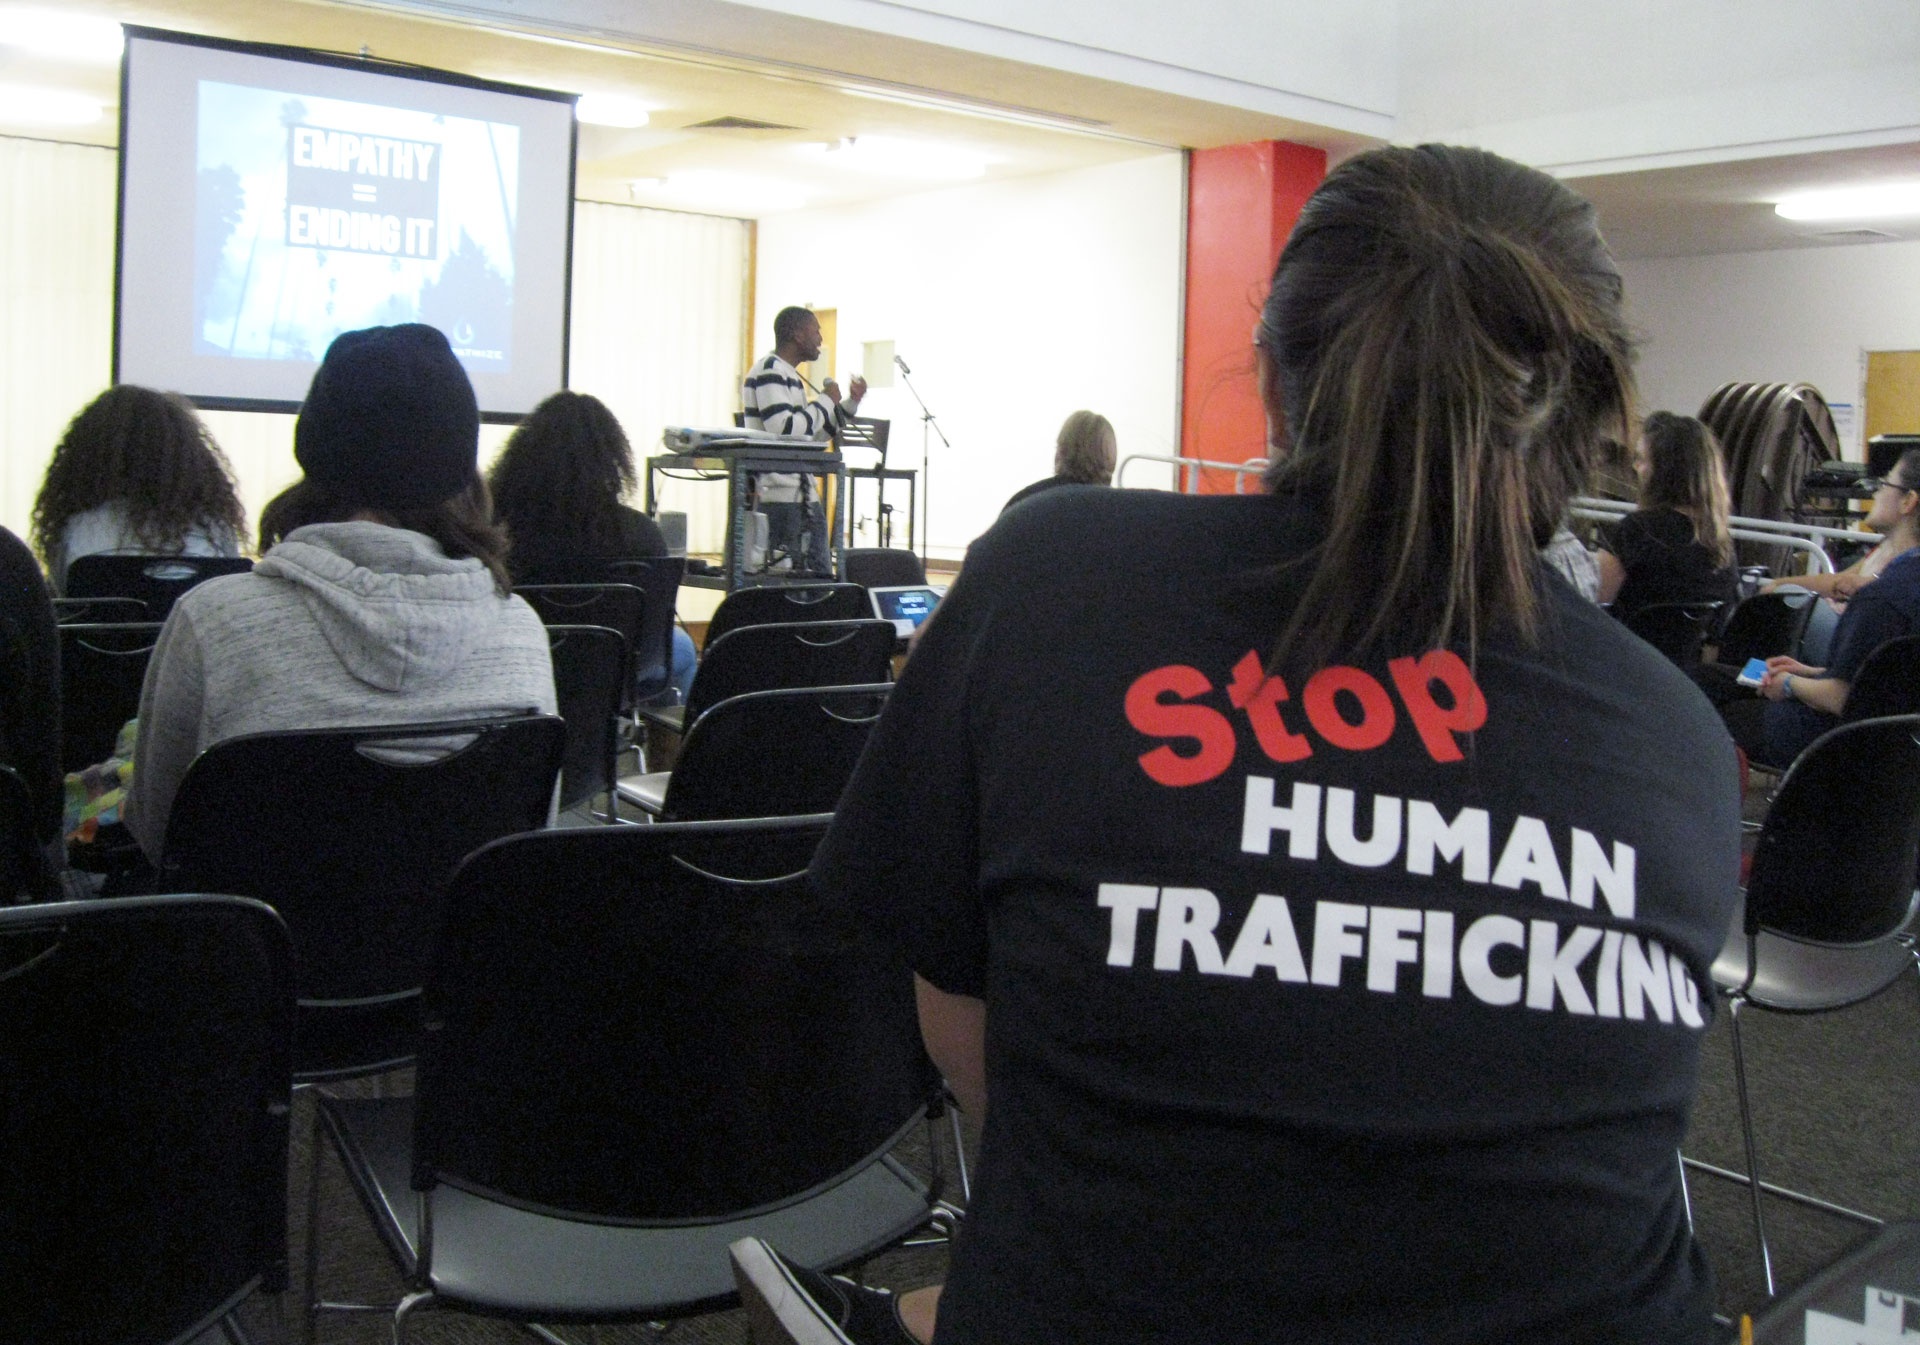 A student wears an anti-human trafficking T-shirt at a recent iEmpathy session in Long Beach.